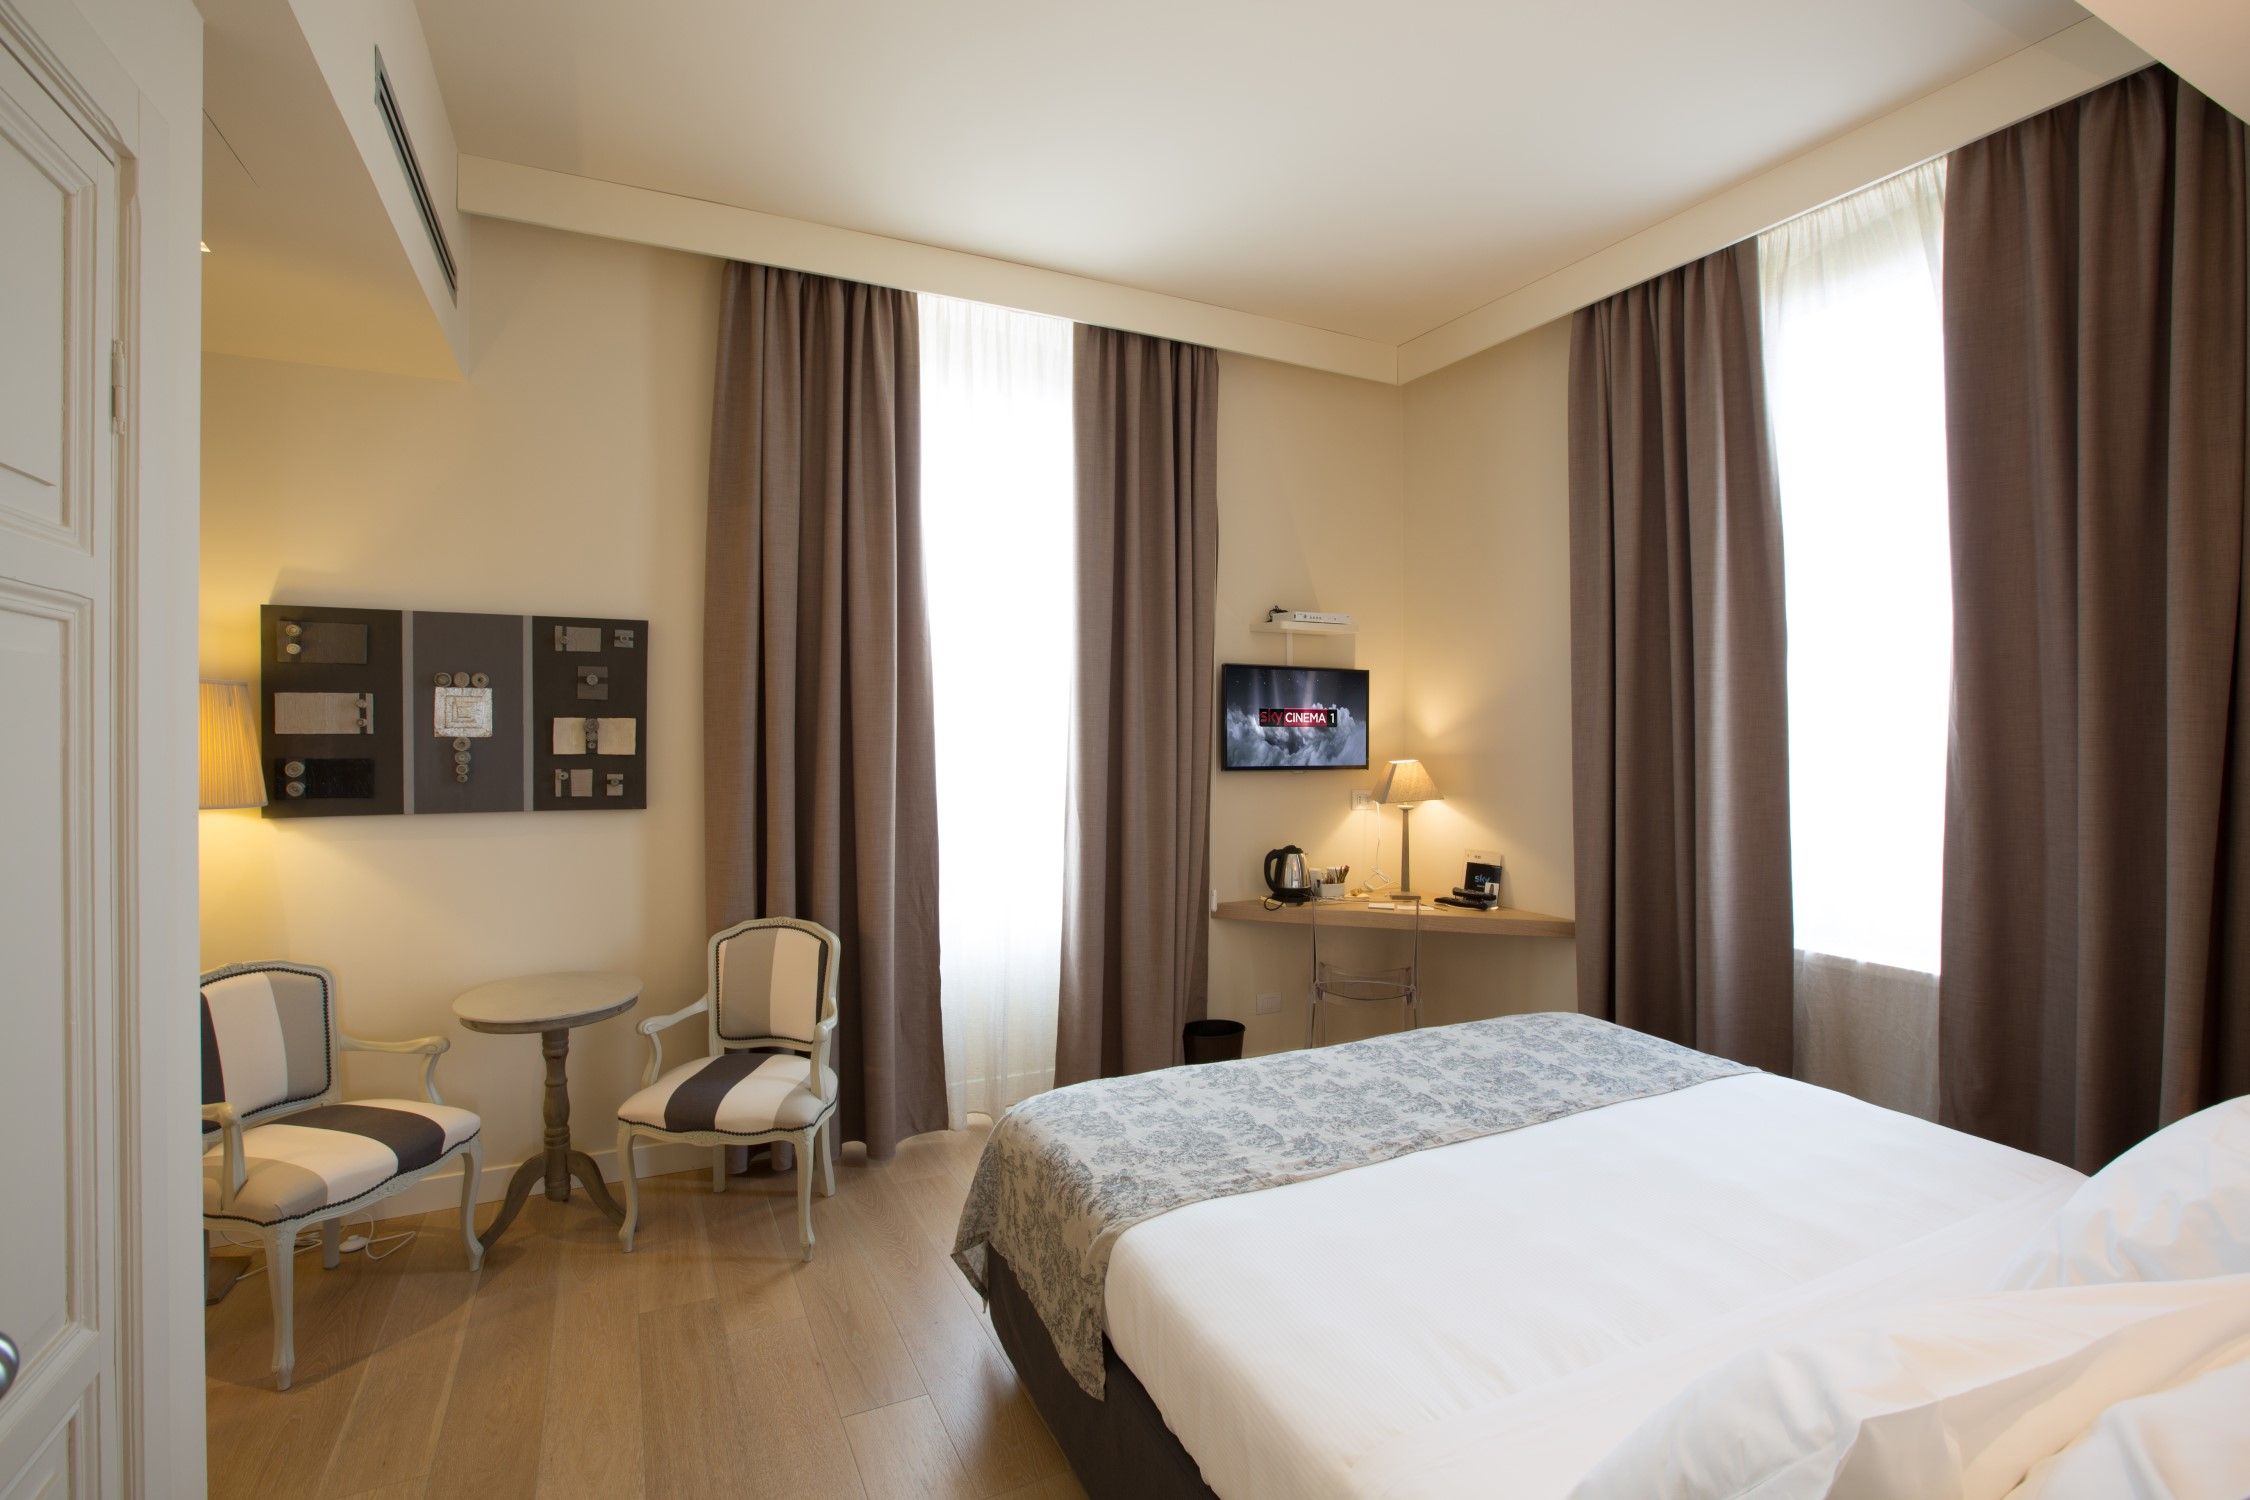 Camera Deluxe Room Hotel 900 Giulianova Luxury Business Leisure Vacanza